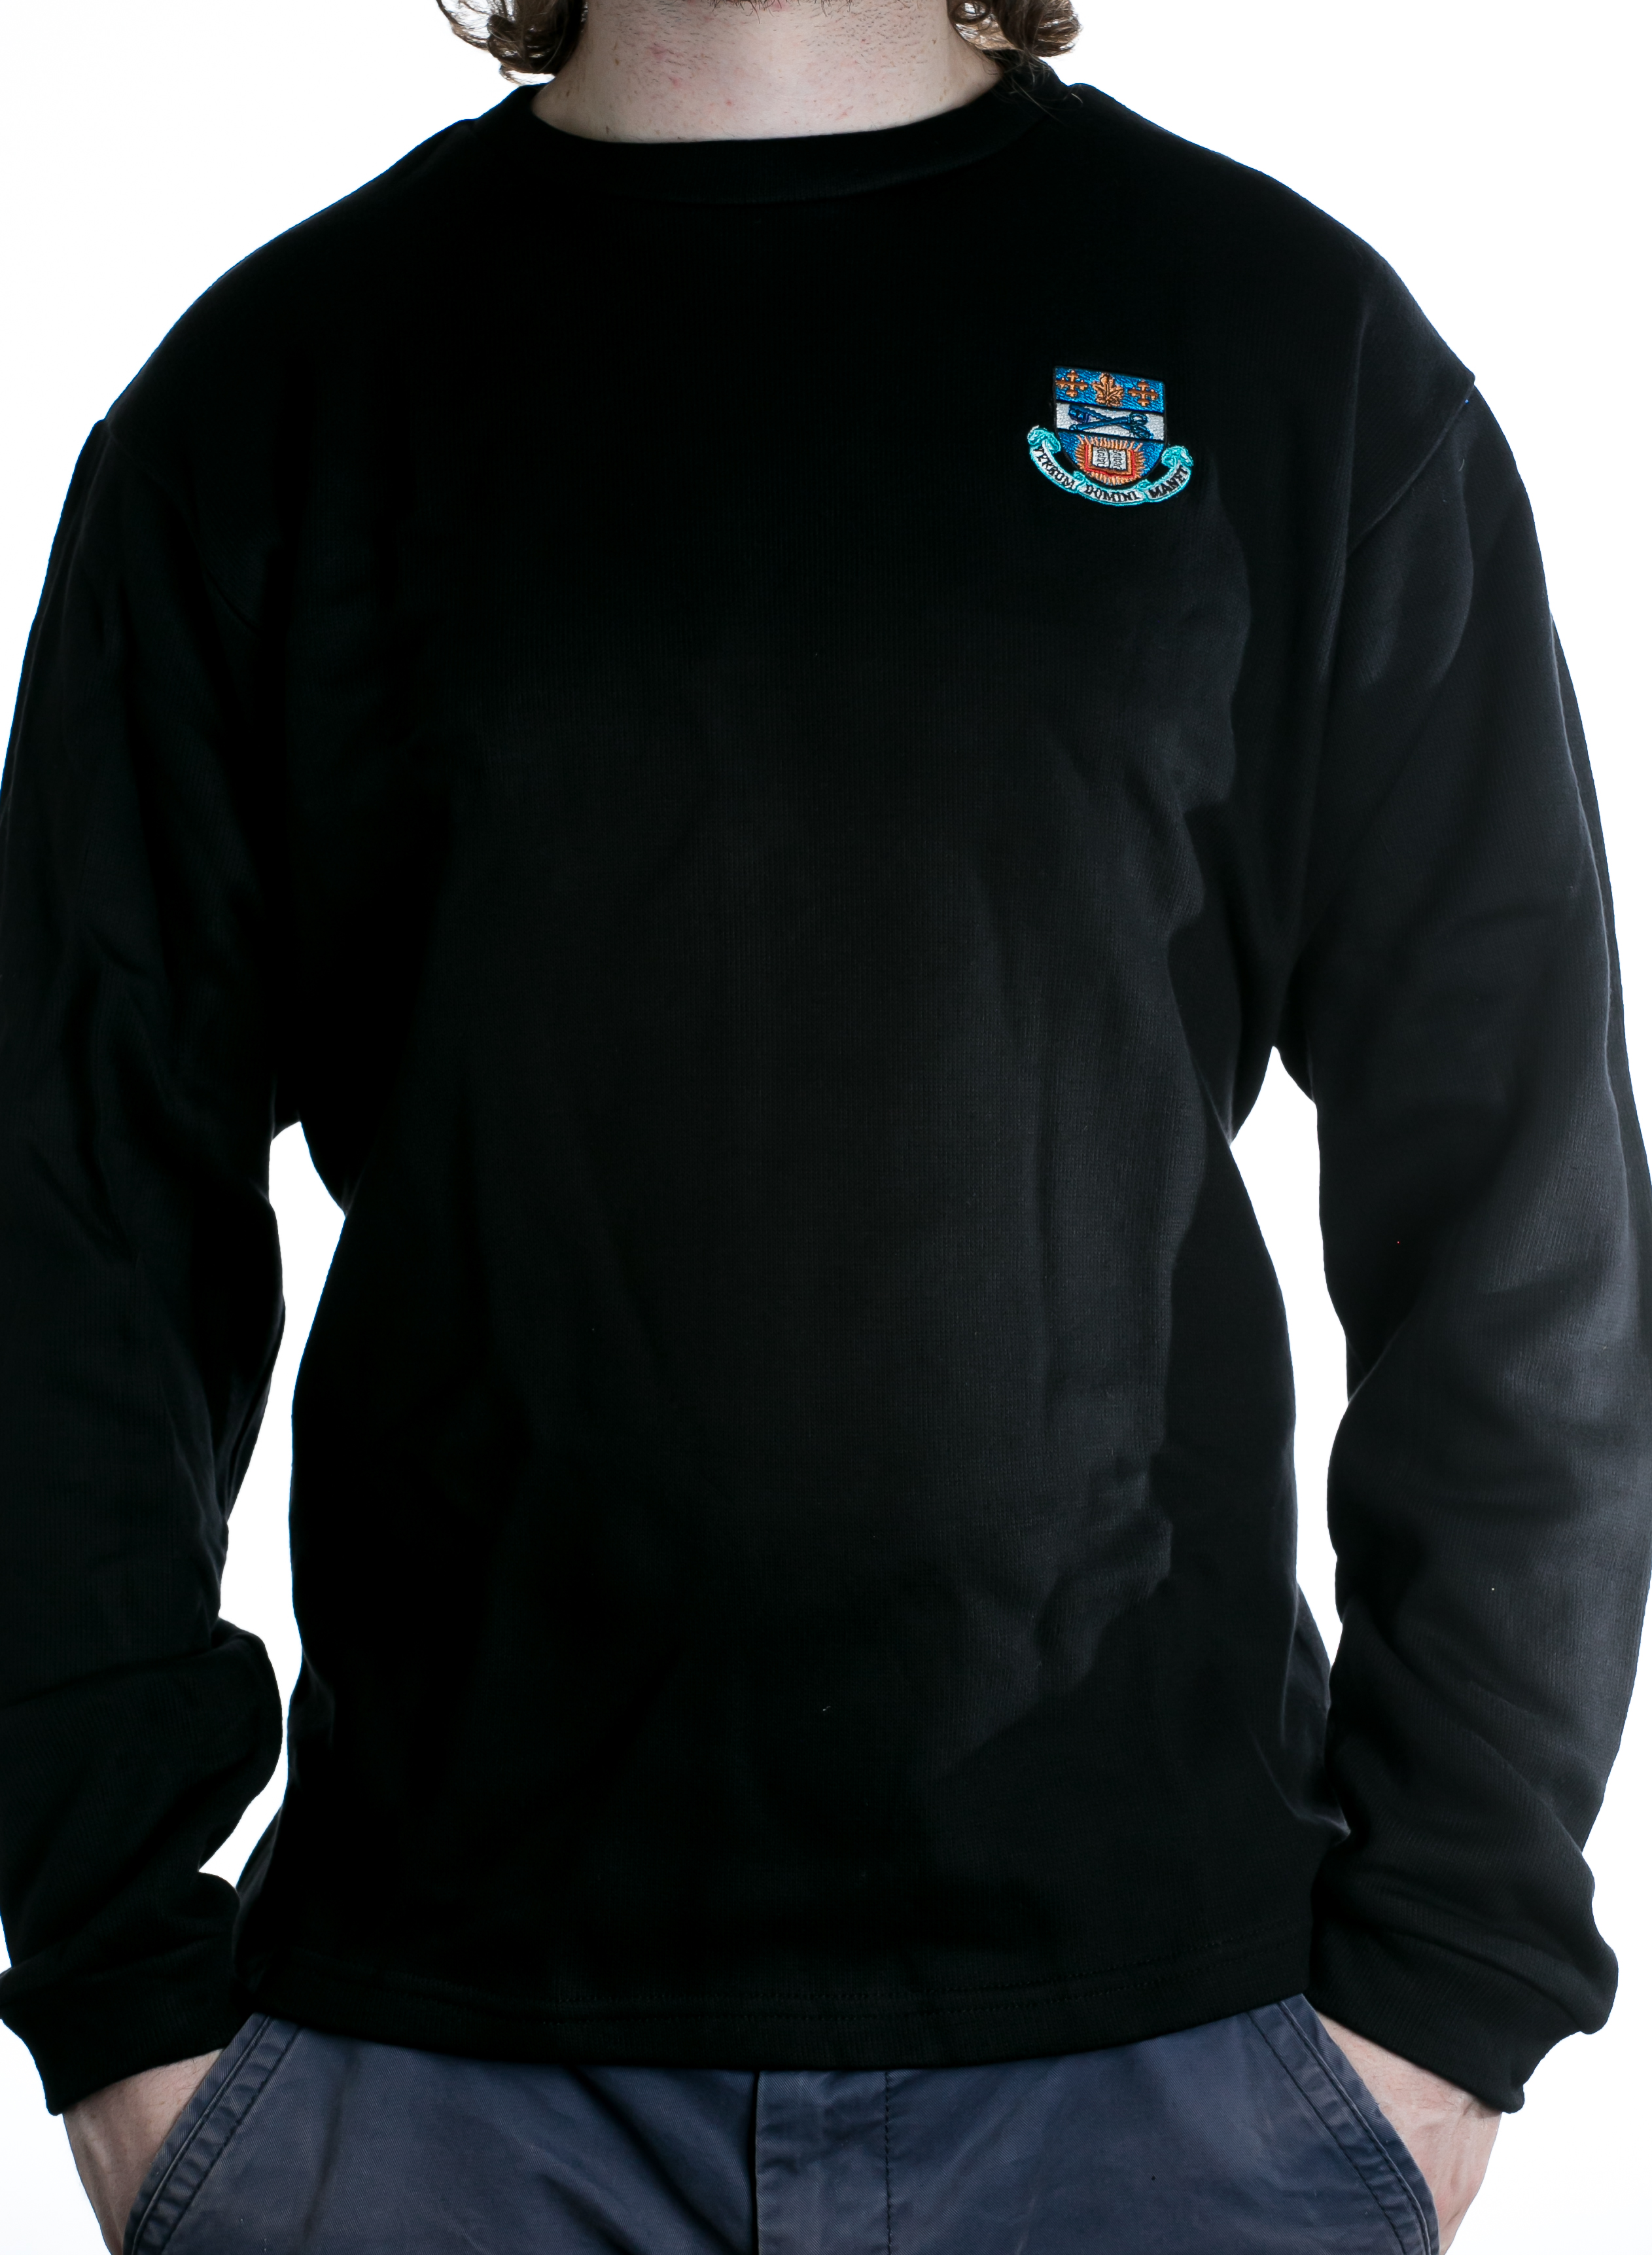 Wycliffe College Crest Sweater